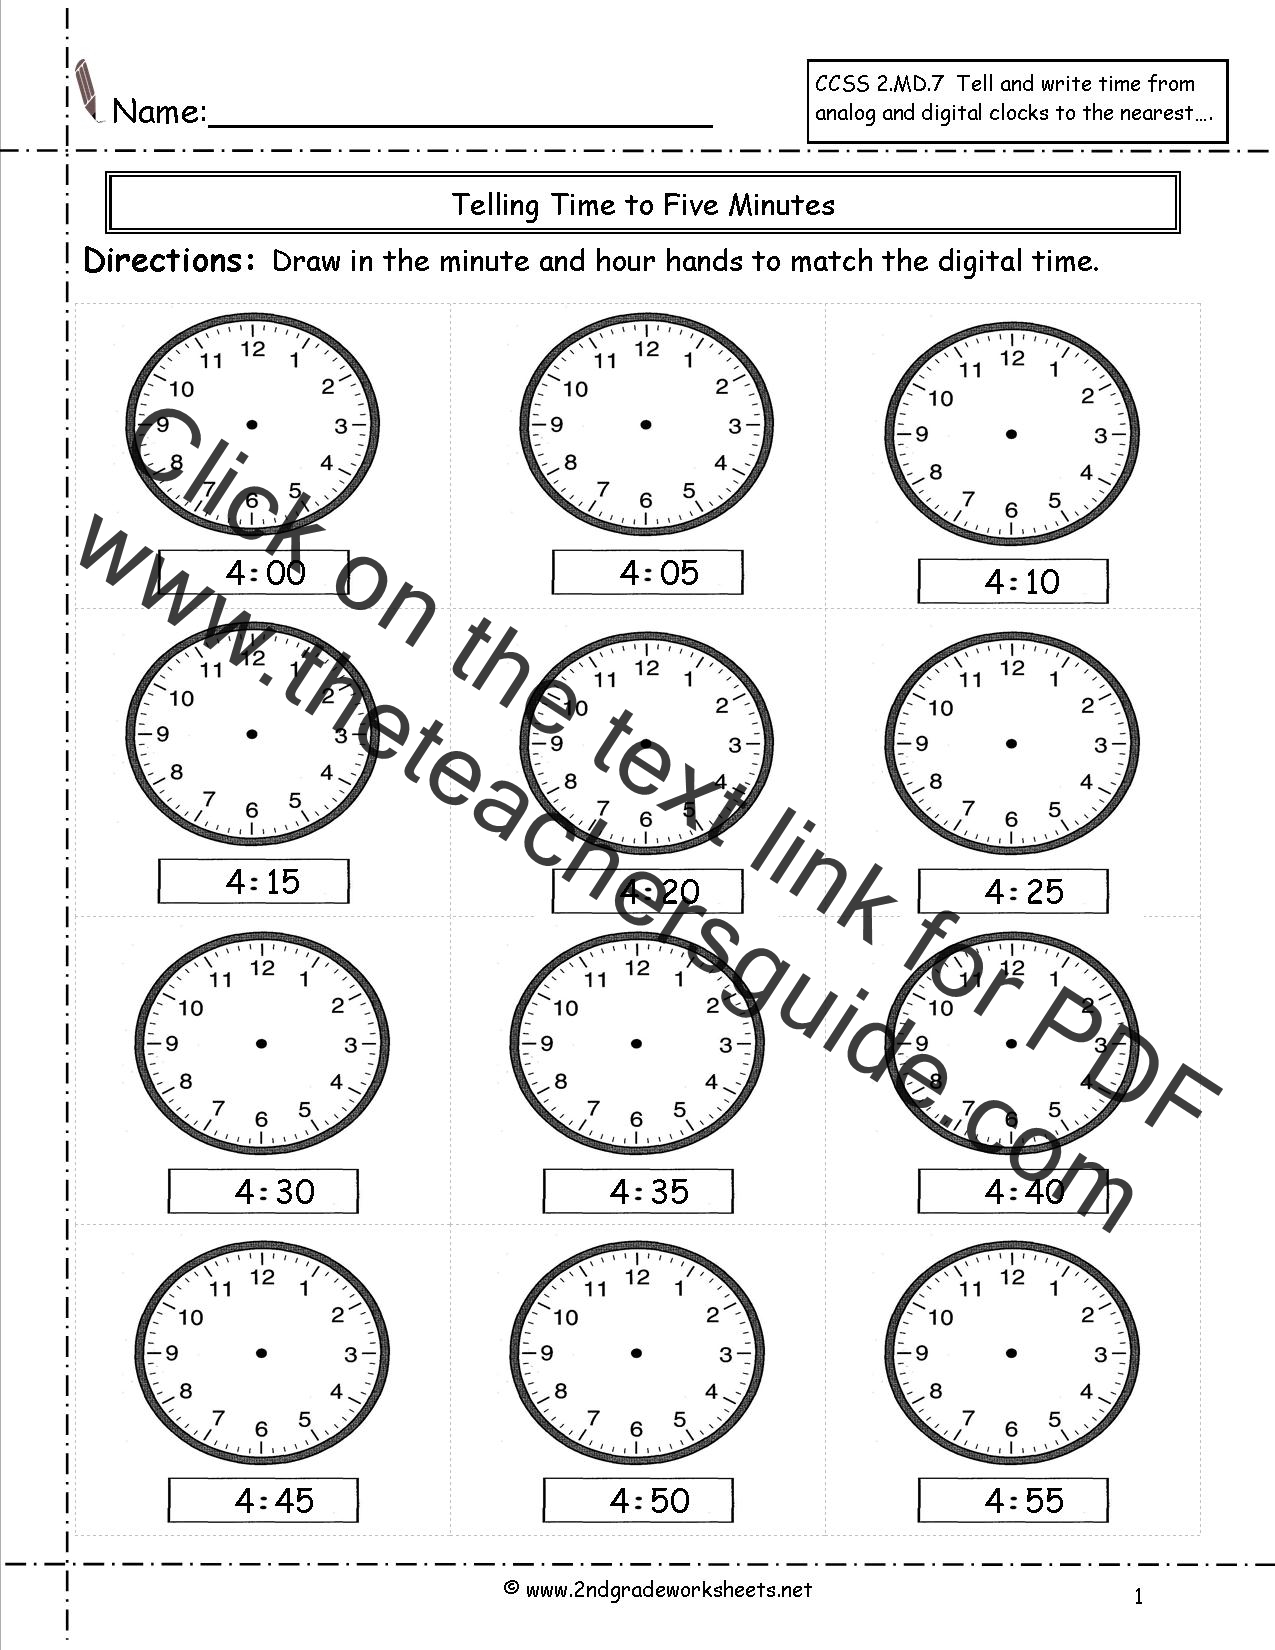 ccss 2 md 7 worksheets telling time to five minutes worksheets. Black Bedroom Furniture Sets. Home Design Ideas